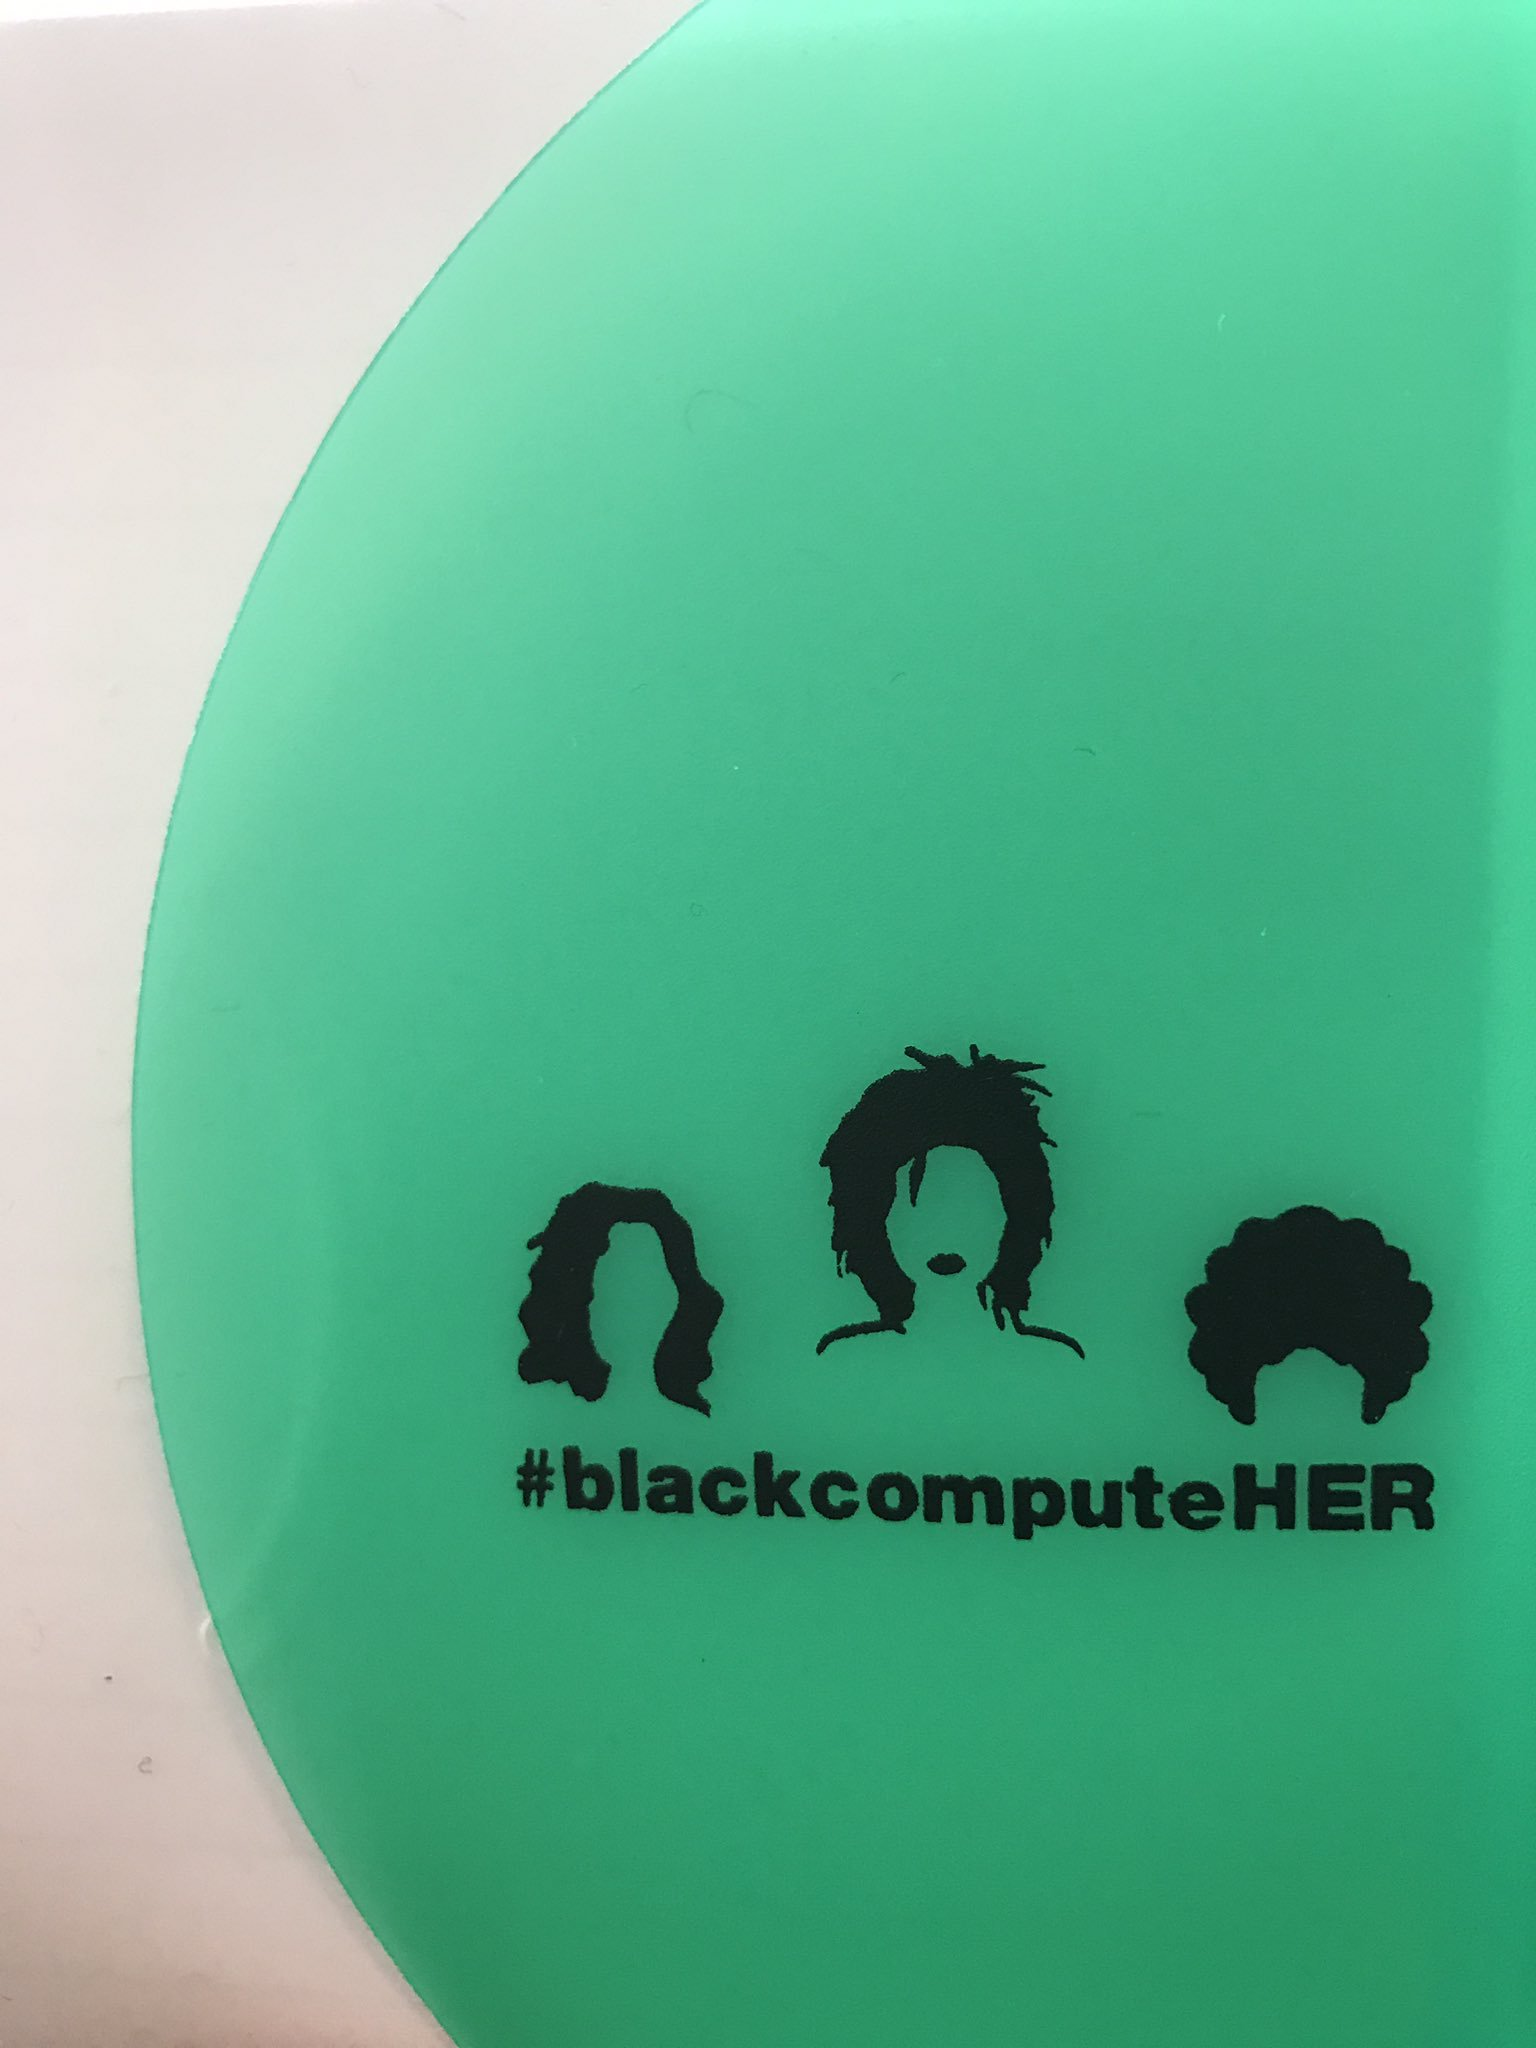 Thumbnail for #BlackComputeHER Black Women in Computing Conference